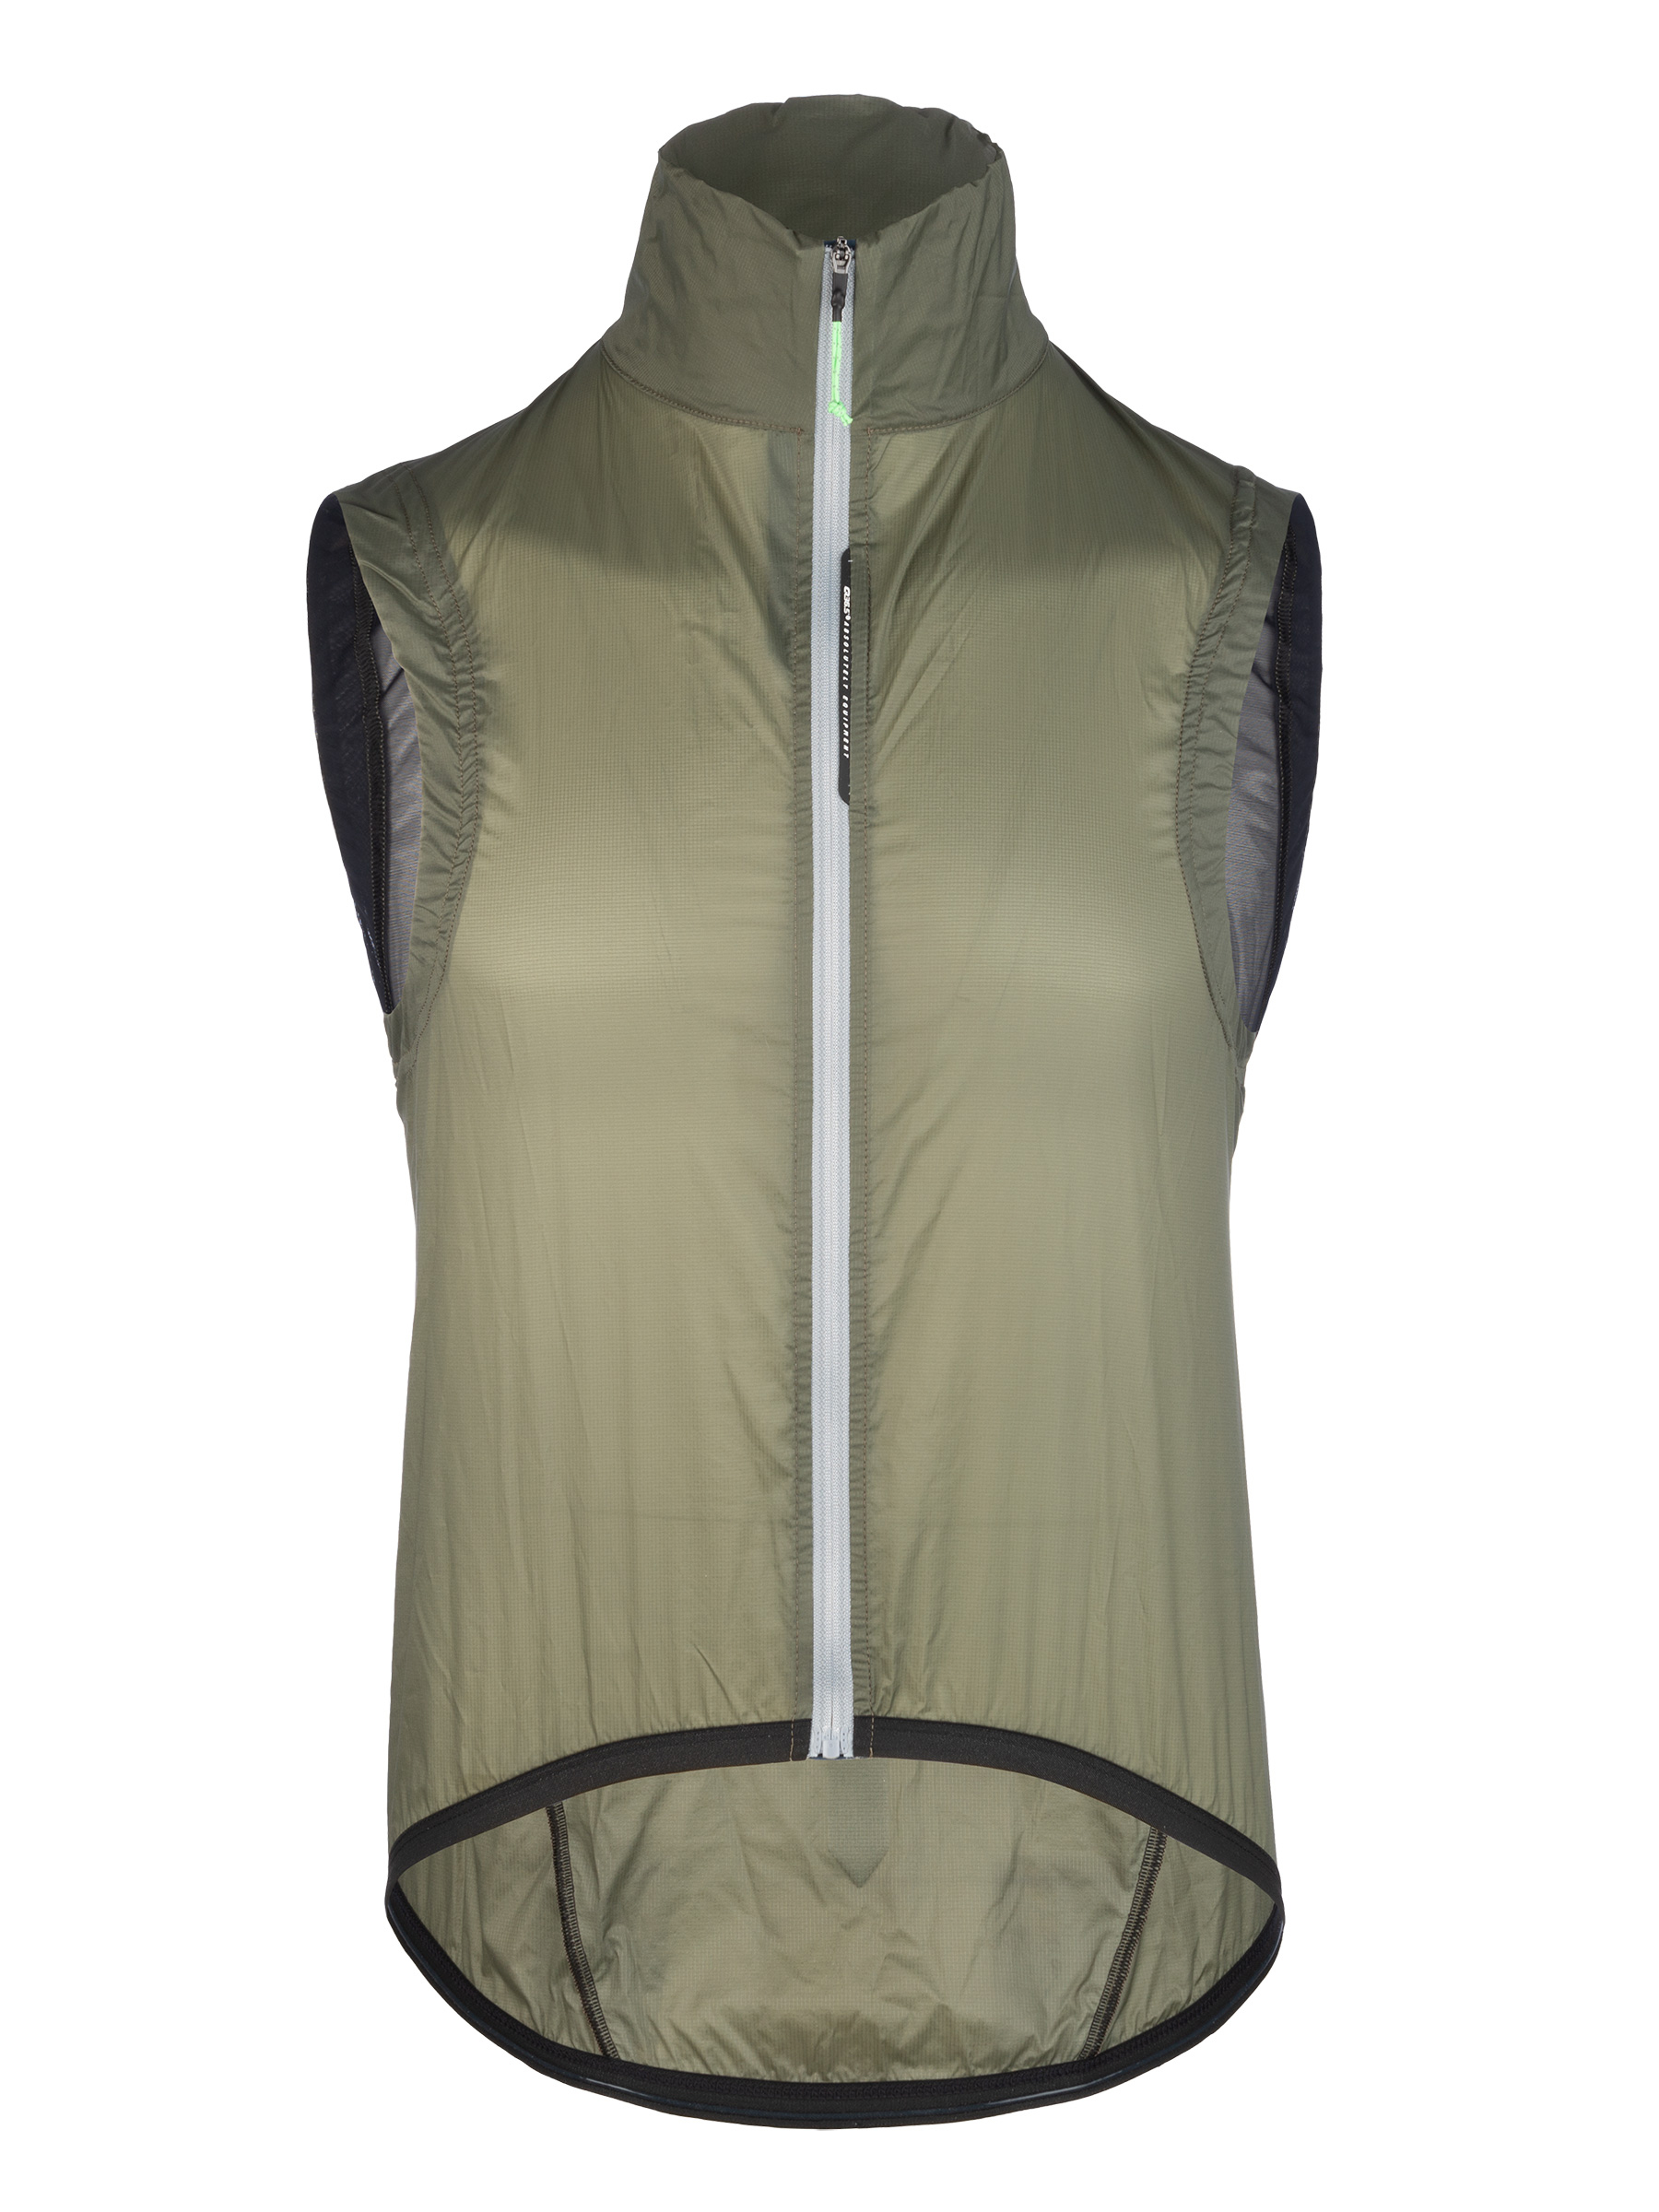 cycling-vest-068.14-Air Vest-olive-front